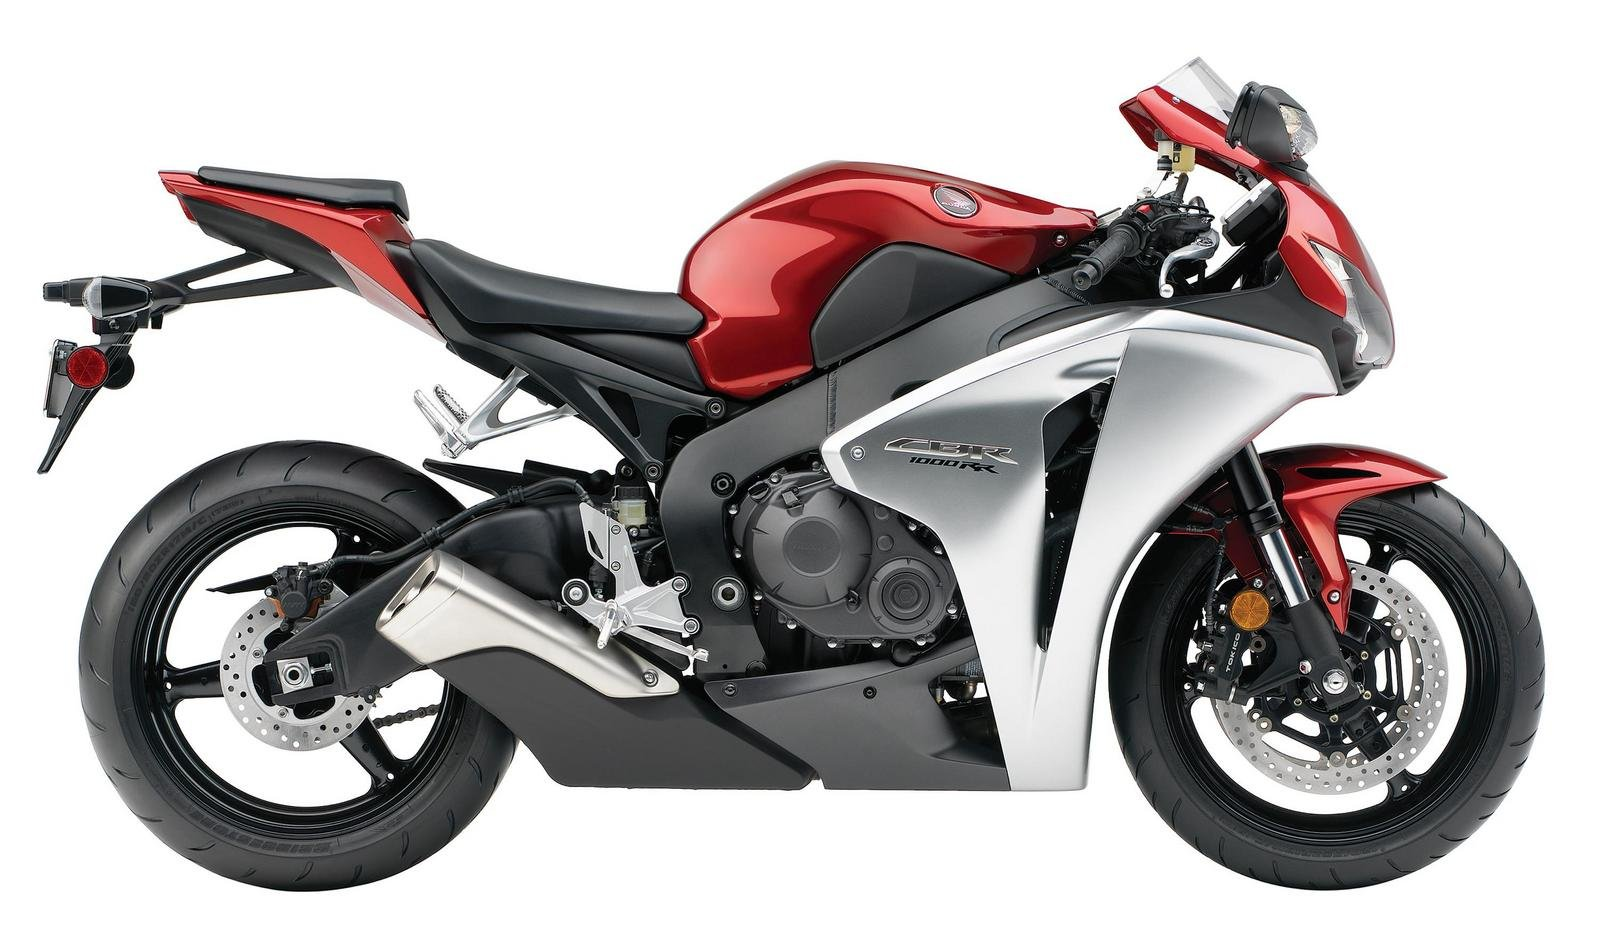 2008 honda cbr600rr motorcycle - photo #13